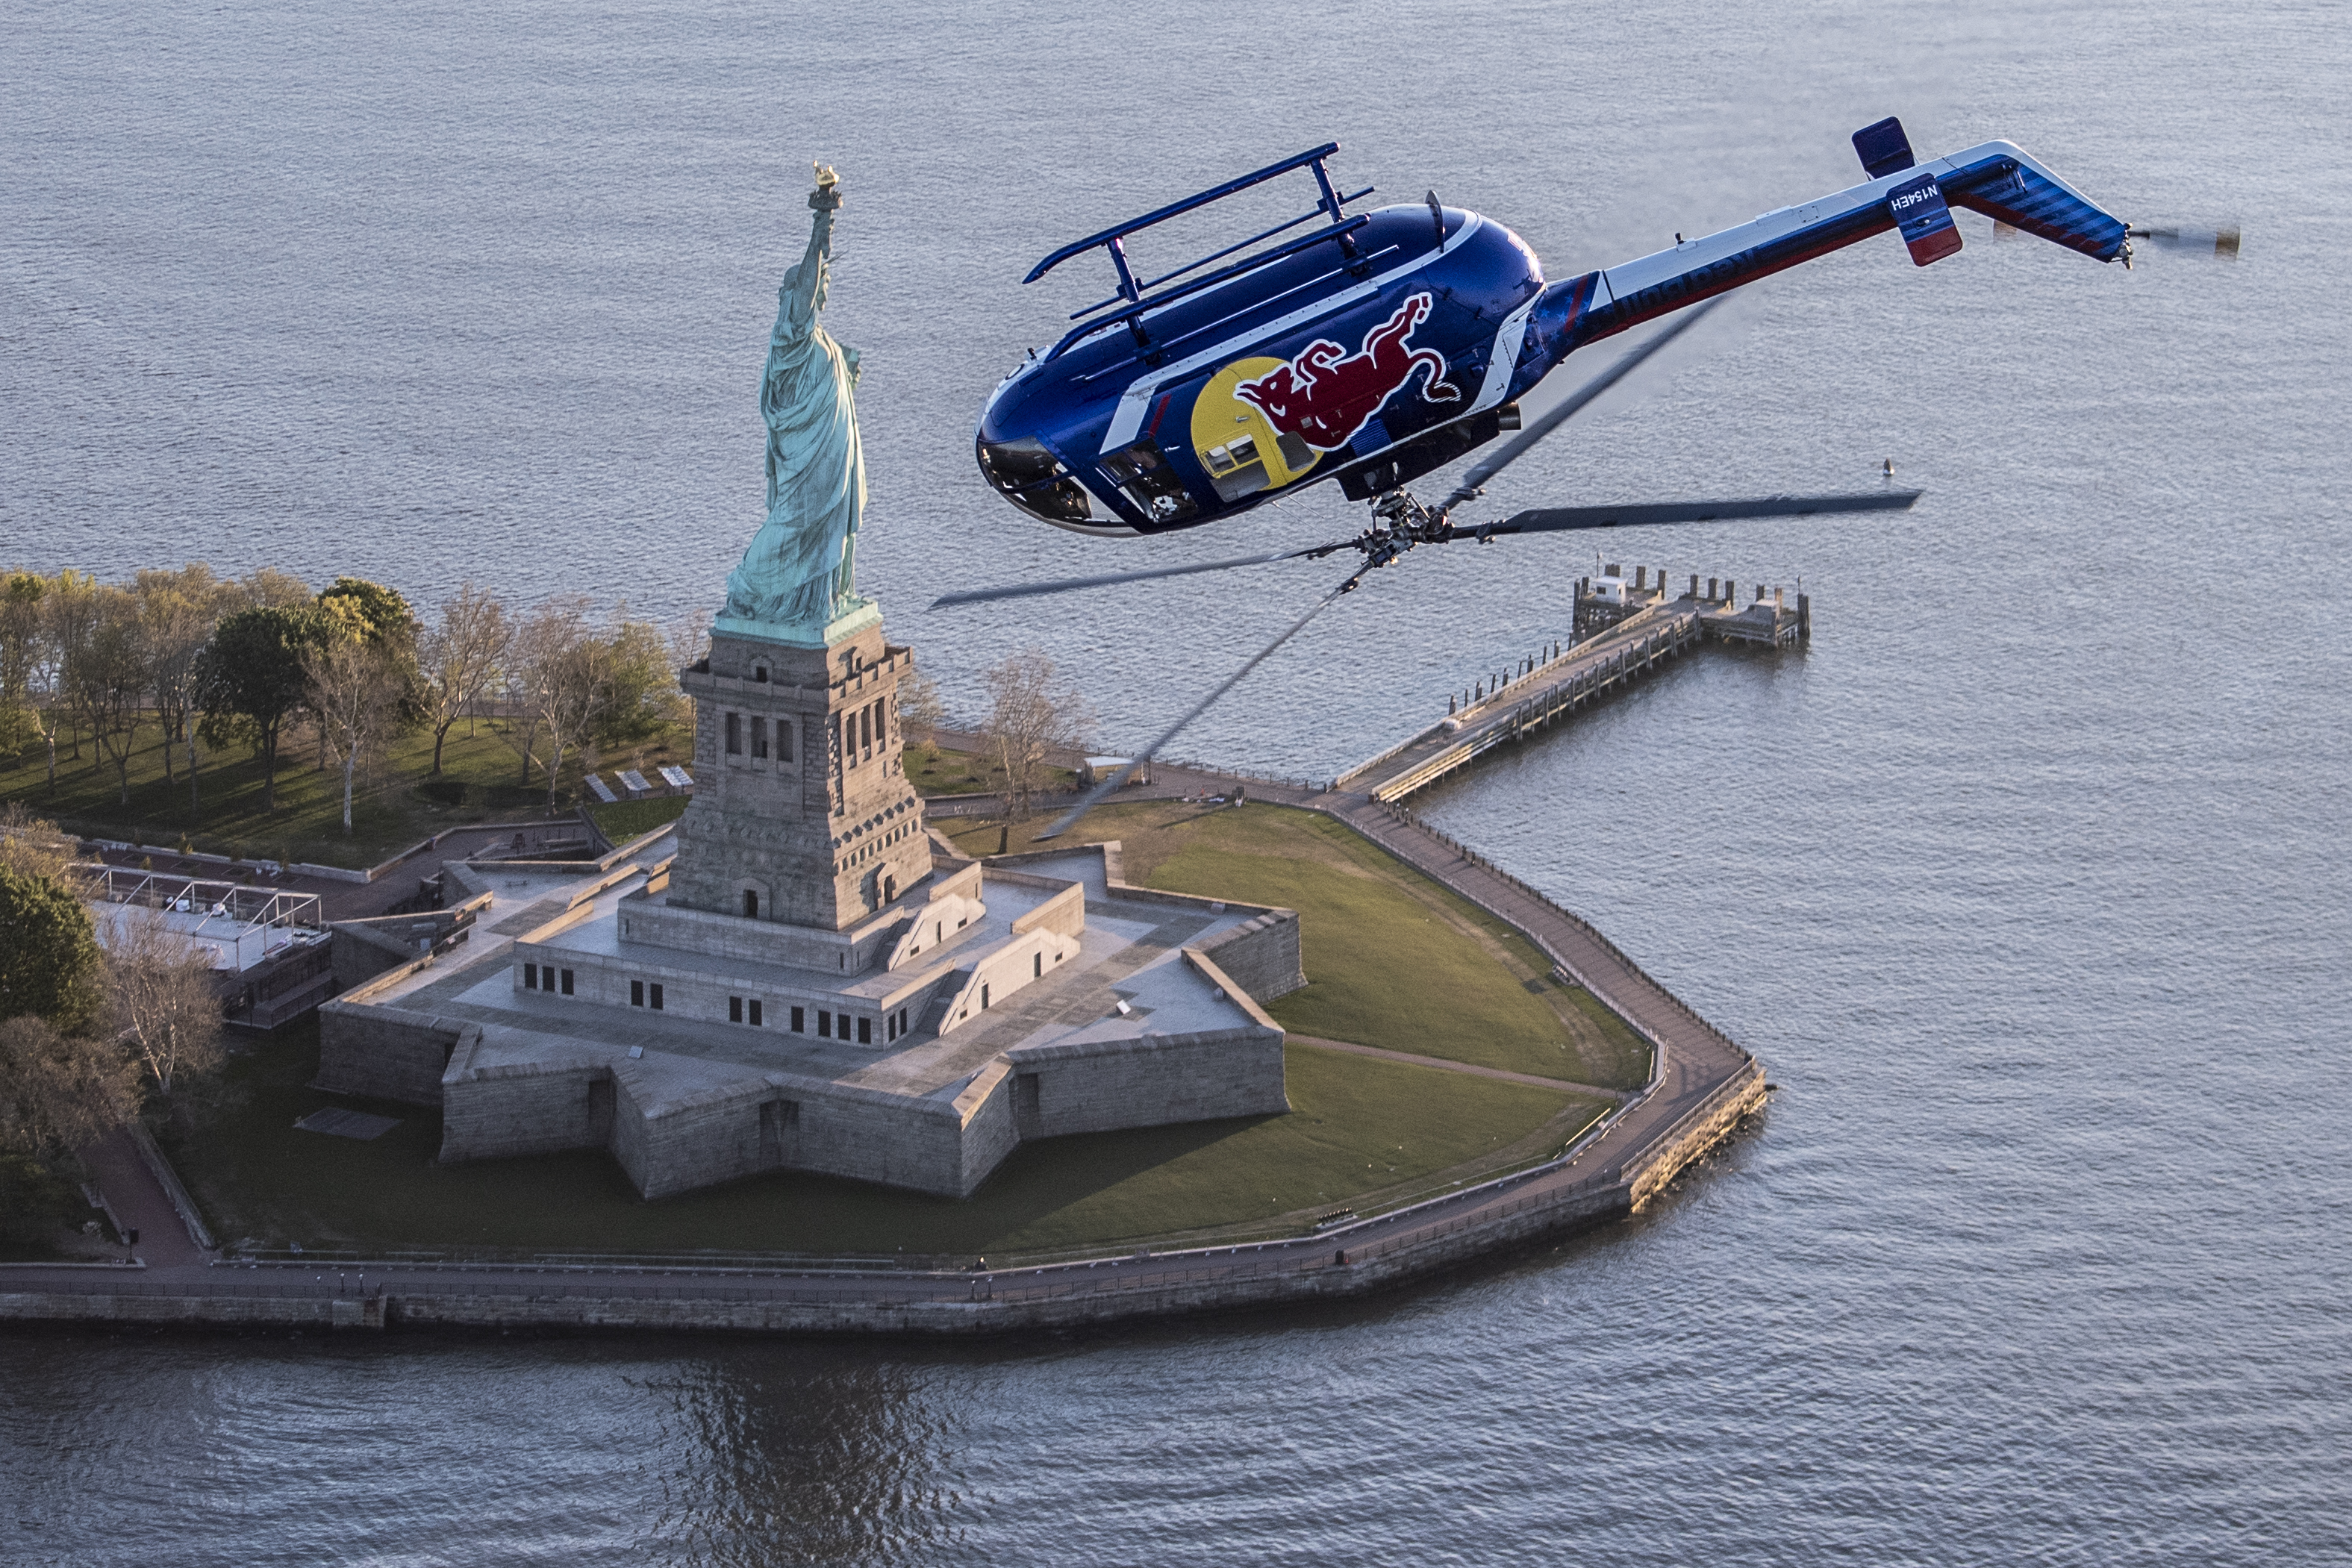 Watch this helicopter fly upside down over Manhattan